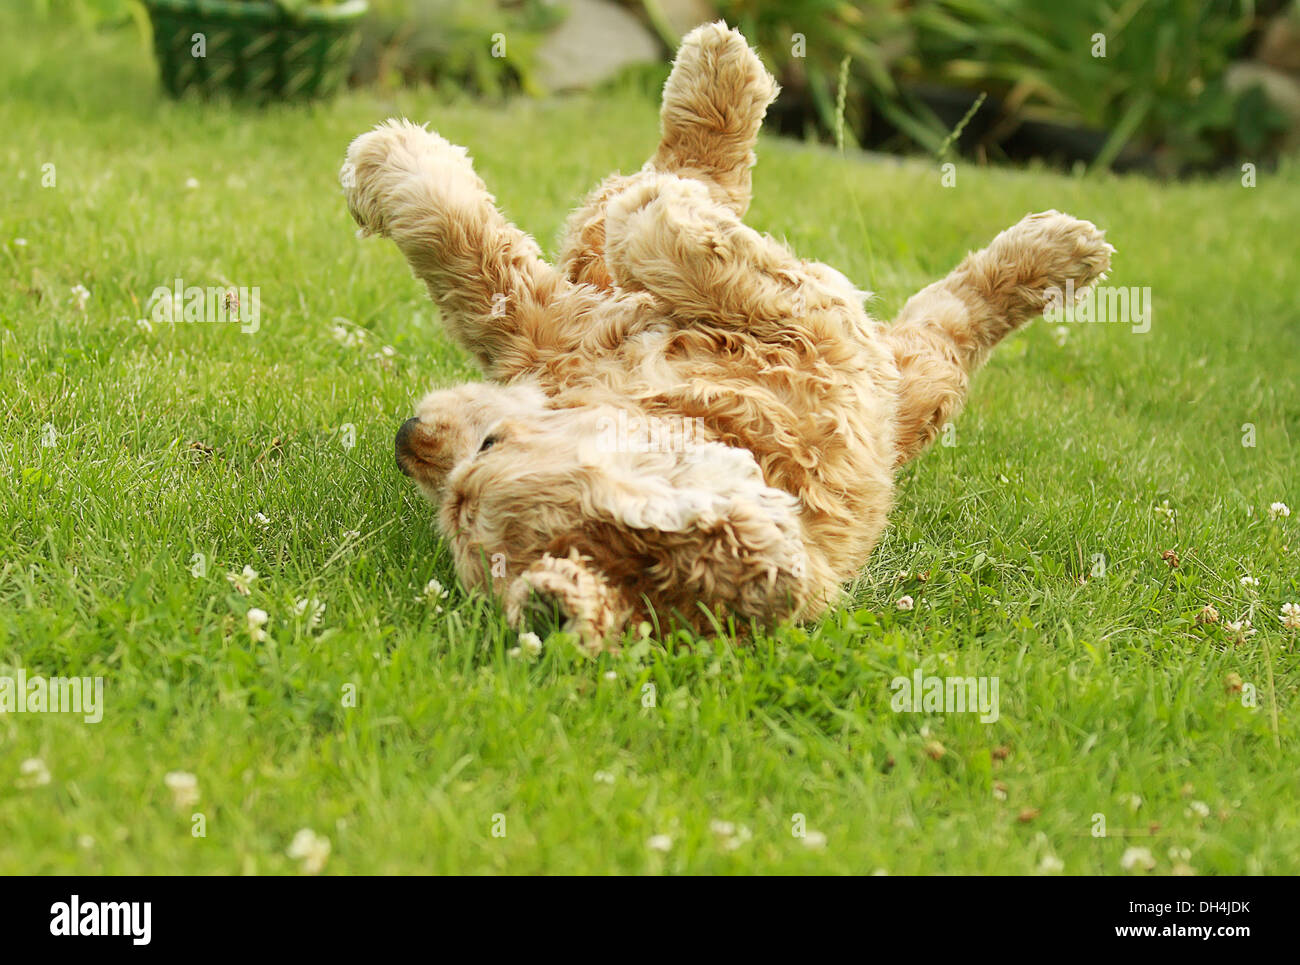 red dog of breed American Cocker Spaniel plays in garden on green grass, well-groomed lawn - Stock Image